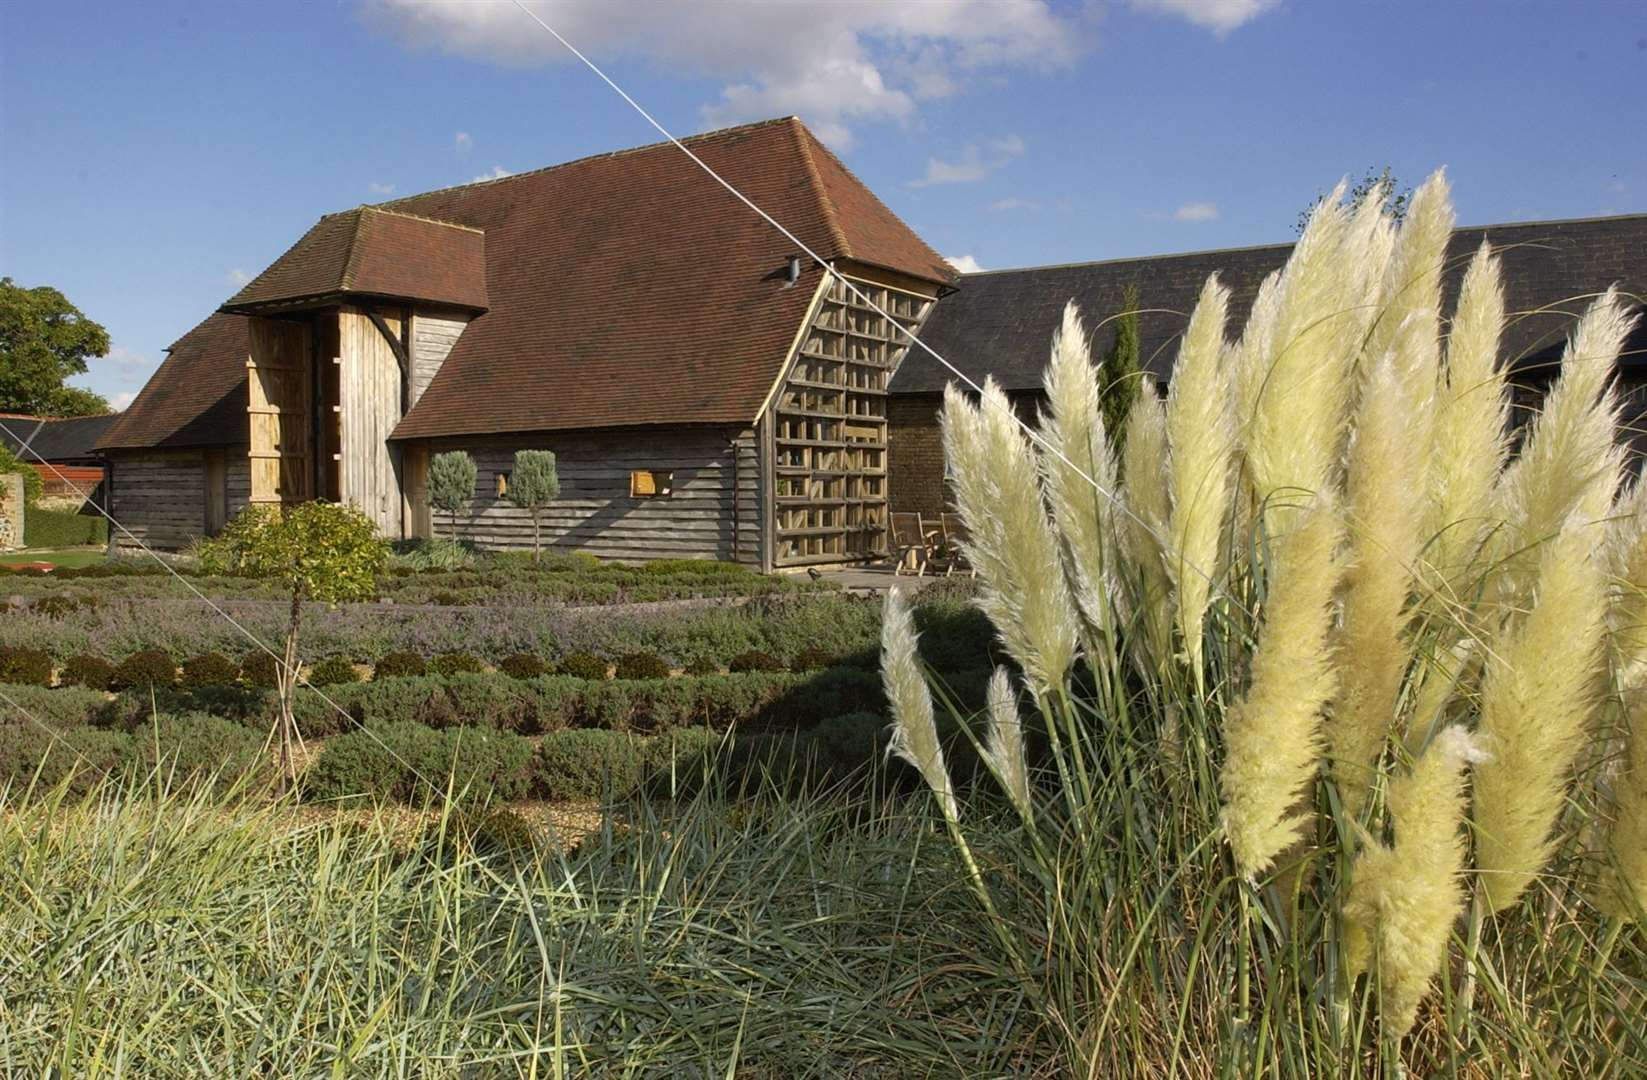 You could visit Pheasant Barn at Oare if you book online